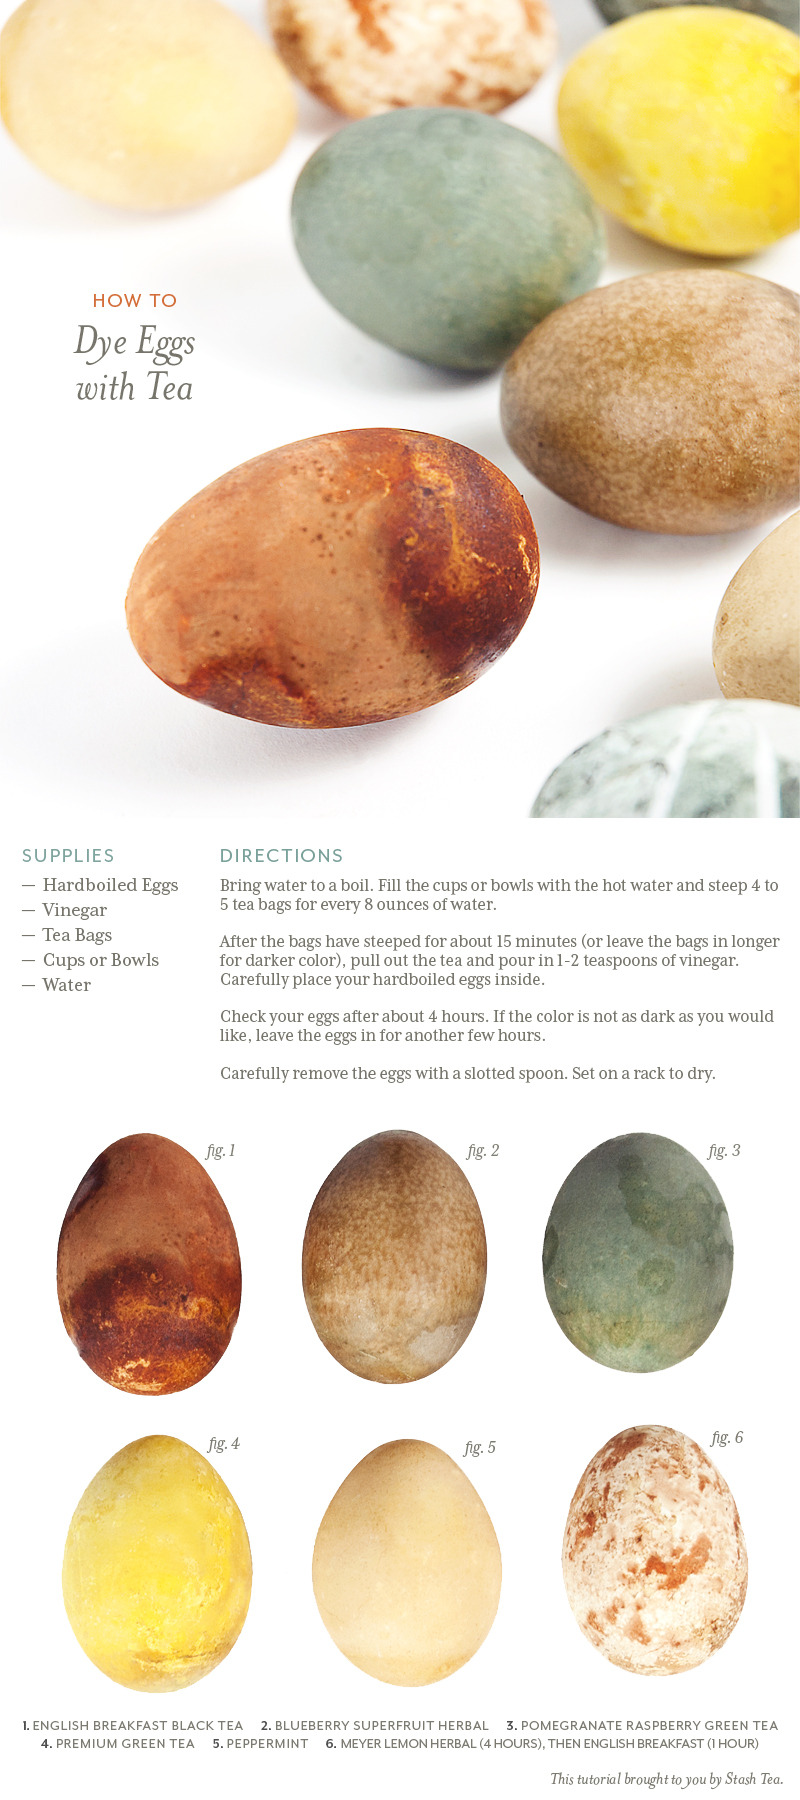 We dyed eggs in our tea and got some unexpected results! Learn how to make your own naturally colored Easter eggs by following our easy directions.